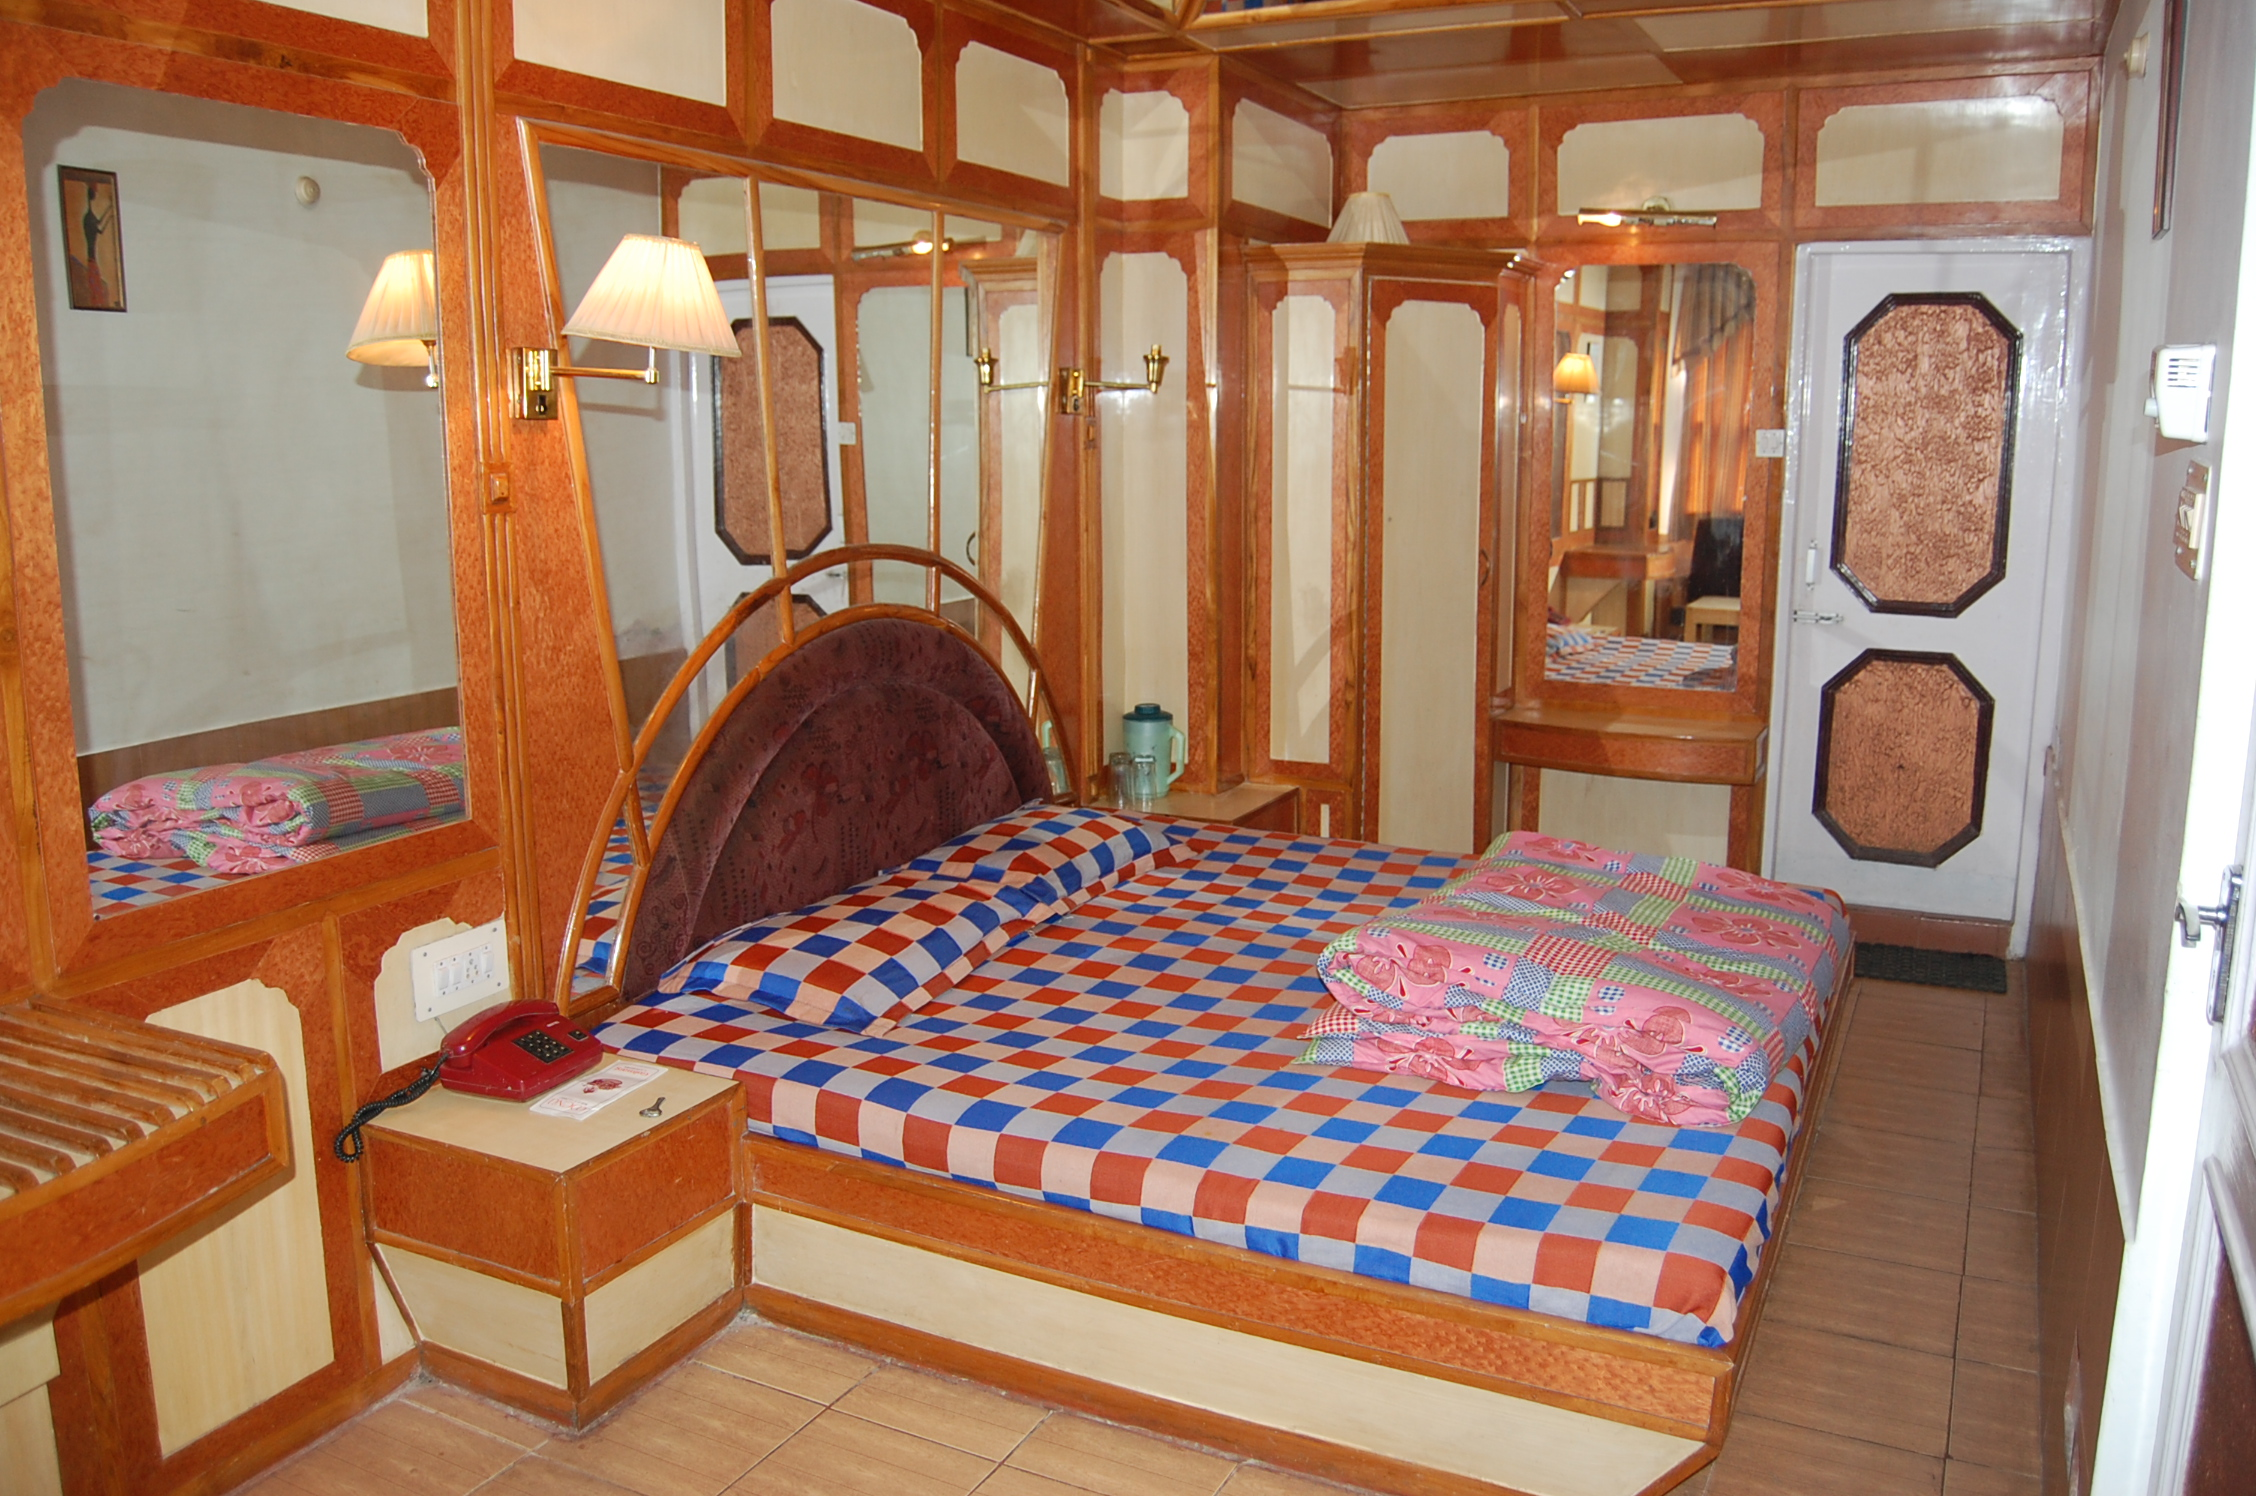 Gulmarg Regency Hotel Shimla Rooms Rates Photos Reviews Deals Contact No and Map